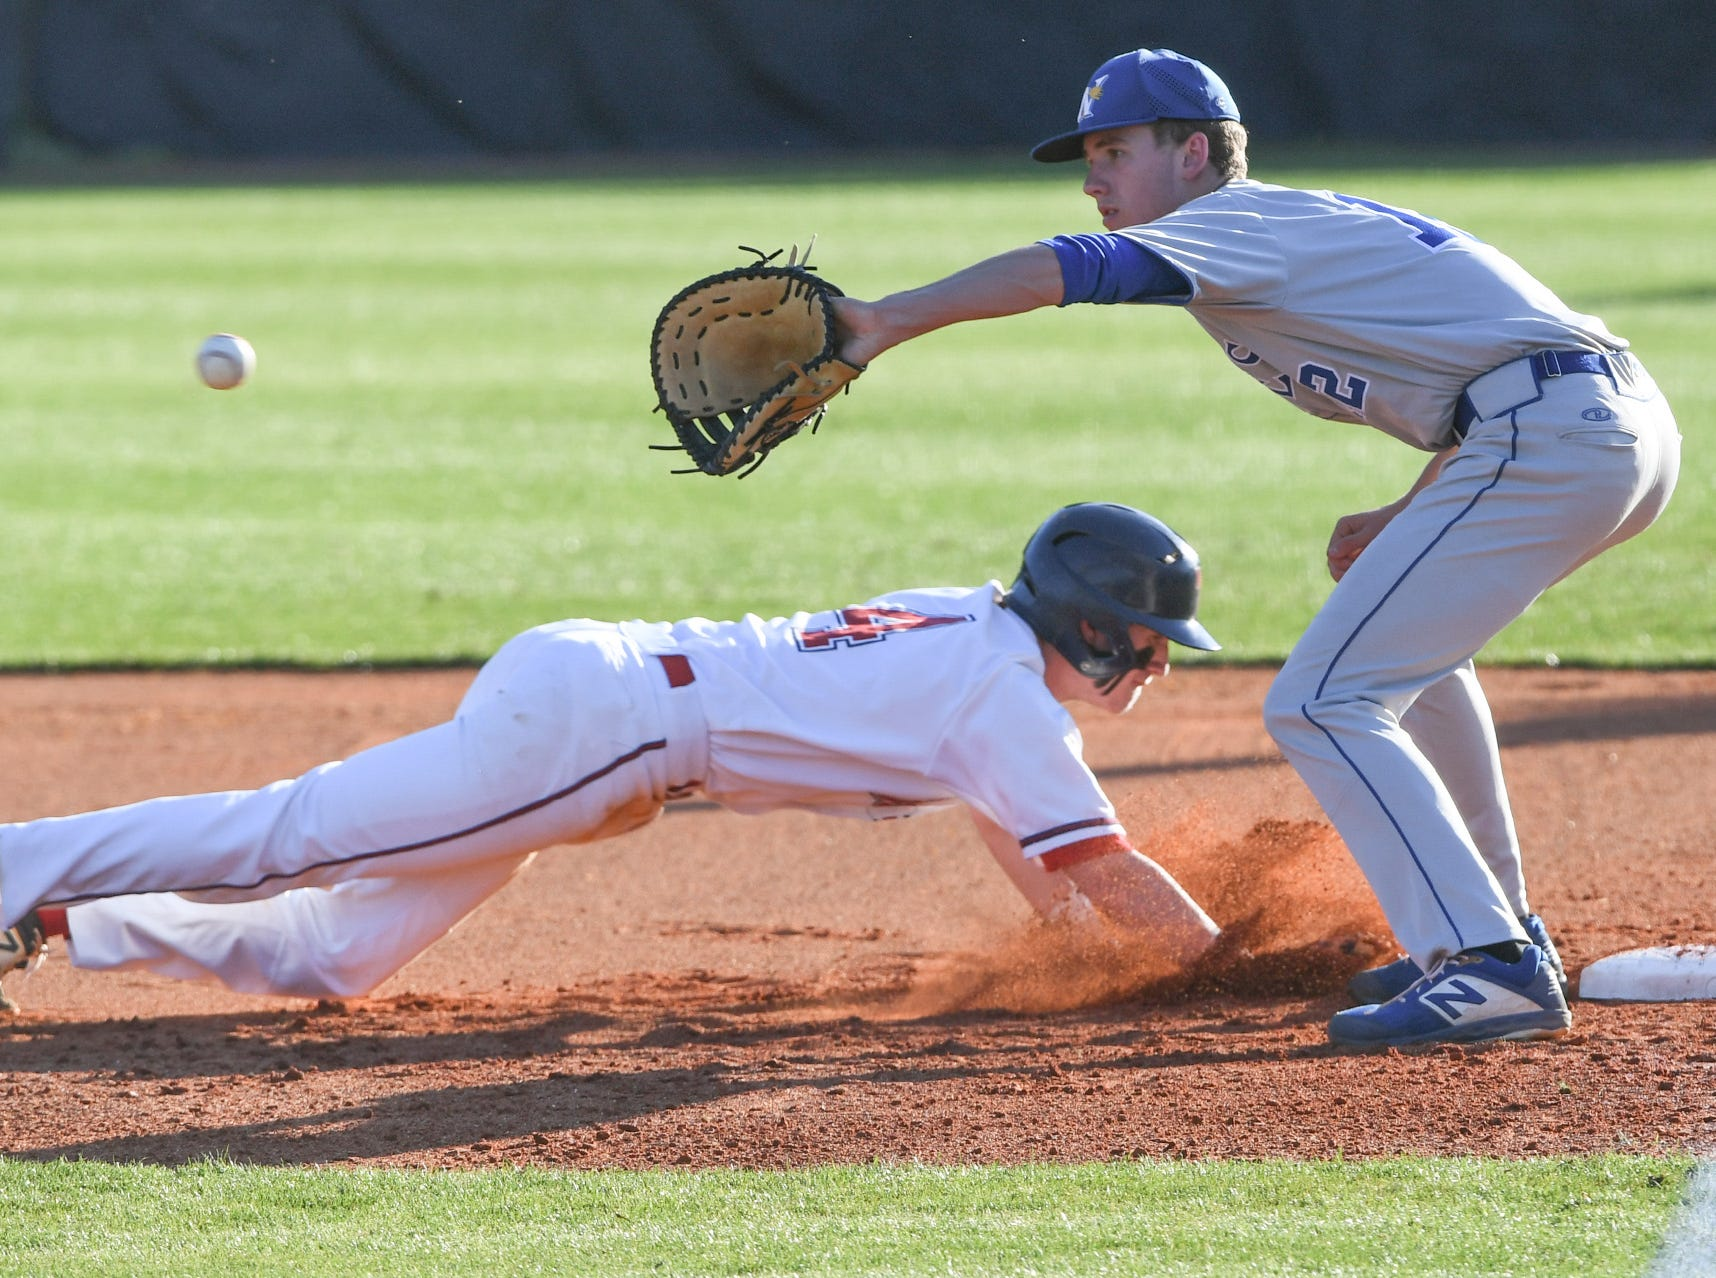 Belton-Honea Path sophomore Talmadge Lecroy (4) dives safely back to first under the tag of Wren first baseman Cooper Thomas (12) during the bottom of the first inning at Belton-Honea Path High School in Honea Path Wednesday, April 10, 2019.